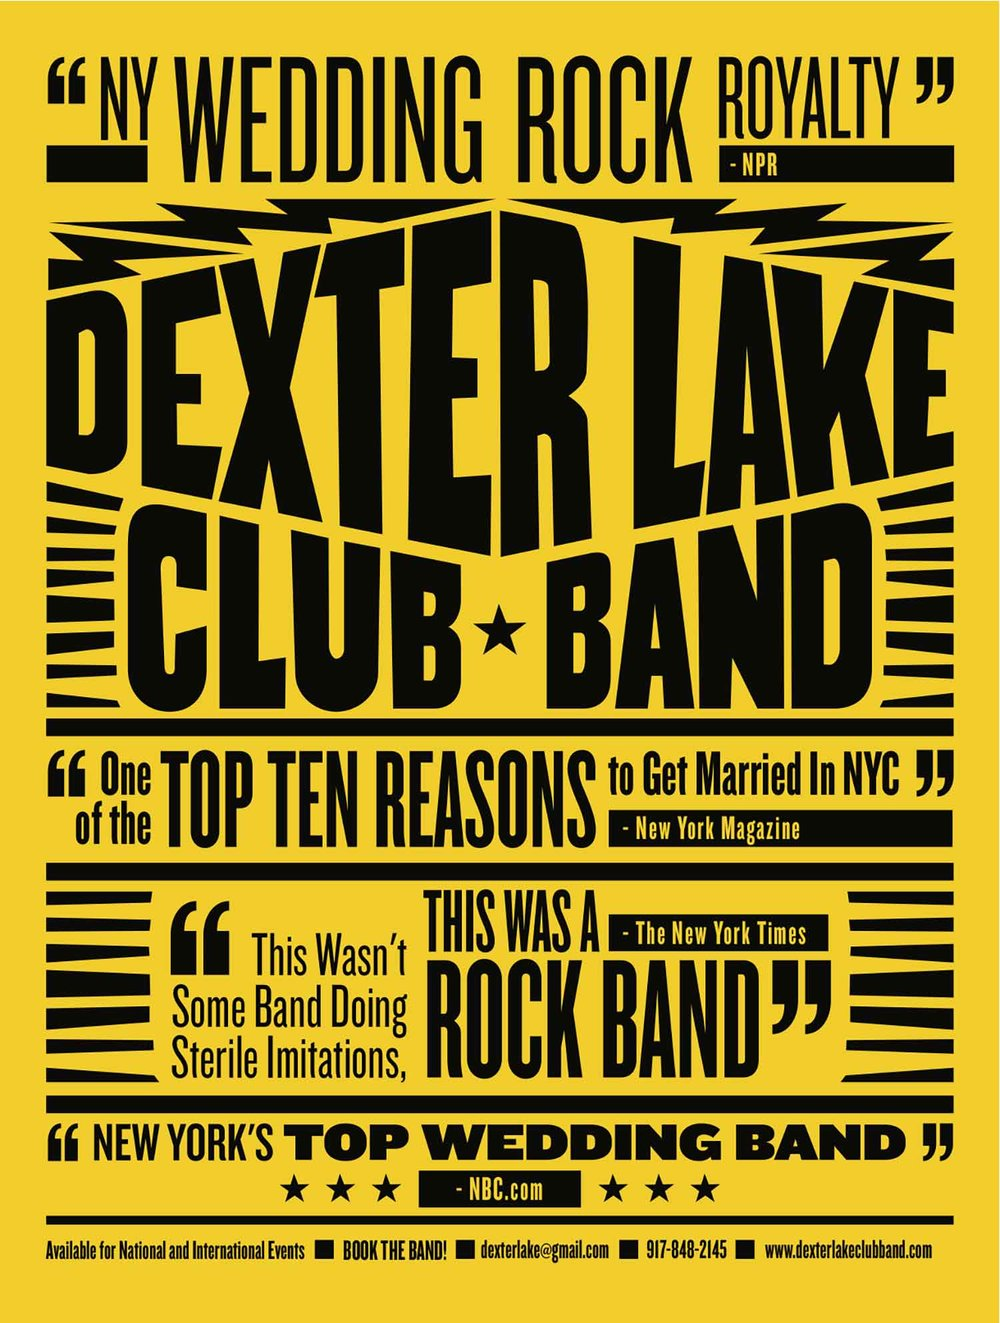 Dexter-Lake-Club-Band-Yellow-Ad-with-Quotes.jpg